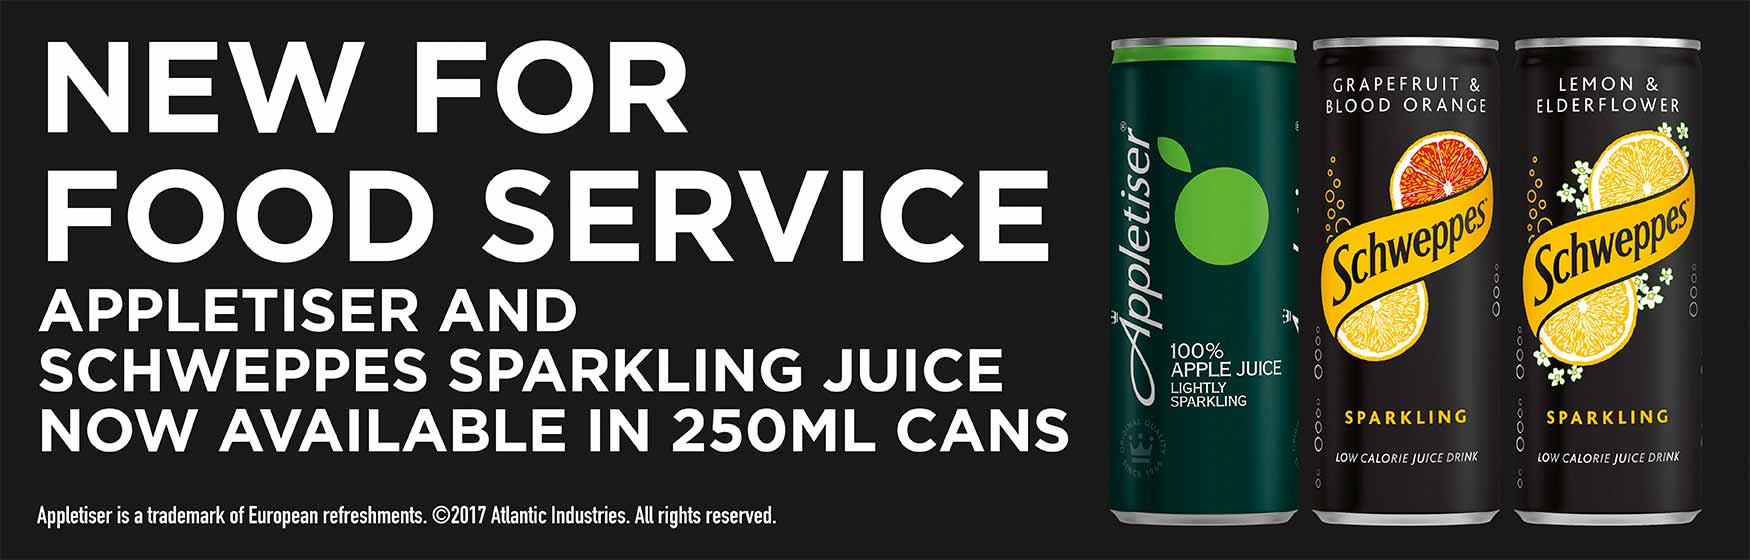 New for Food Service: Appletiser and Schweppes Sparkling Juice now available in 250ml cans